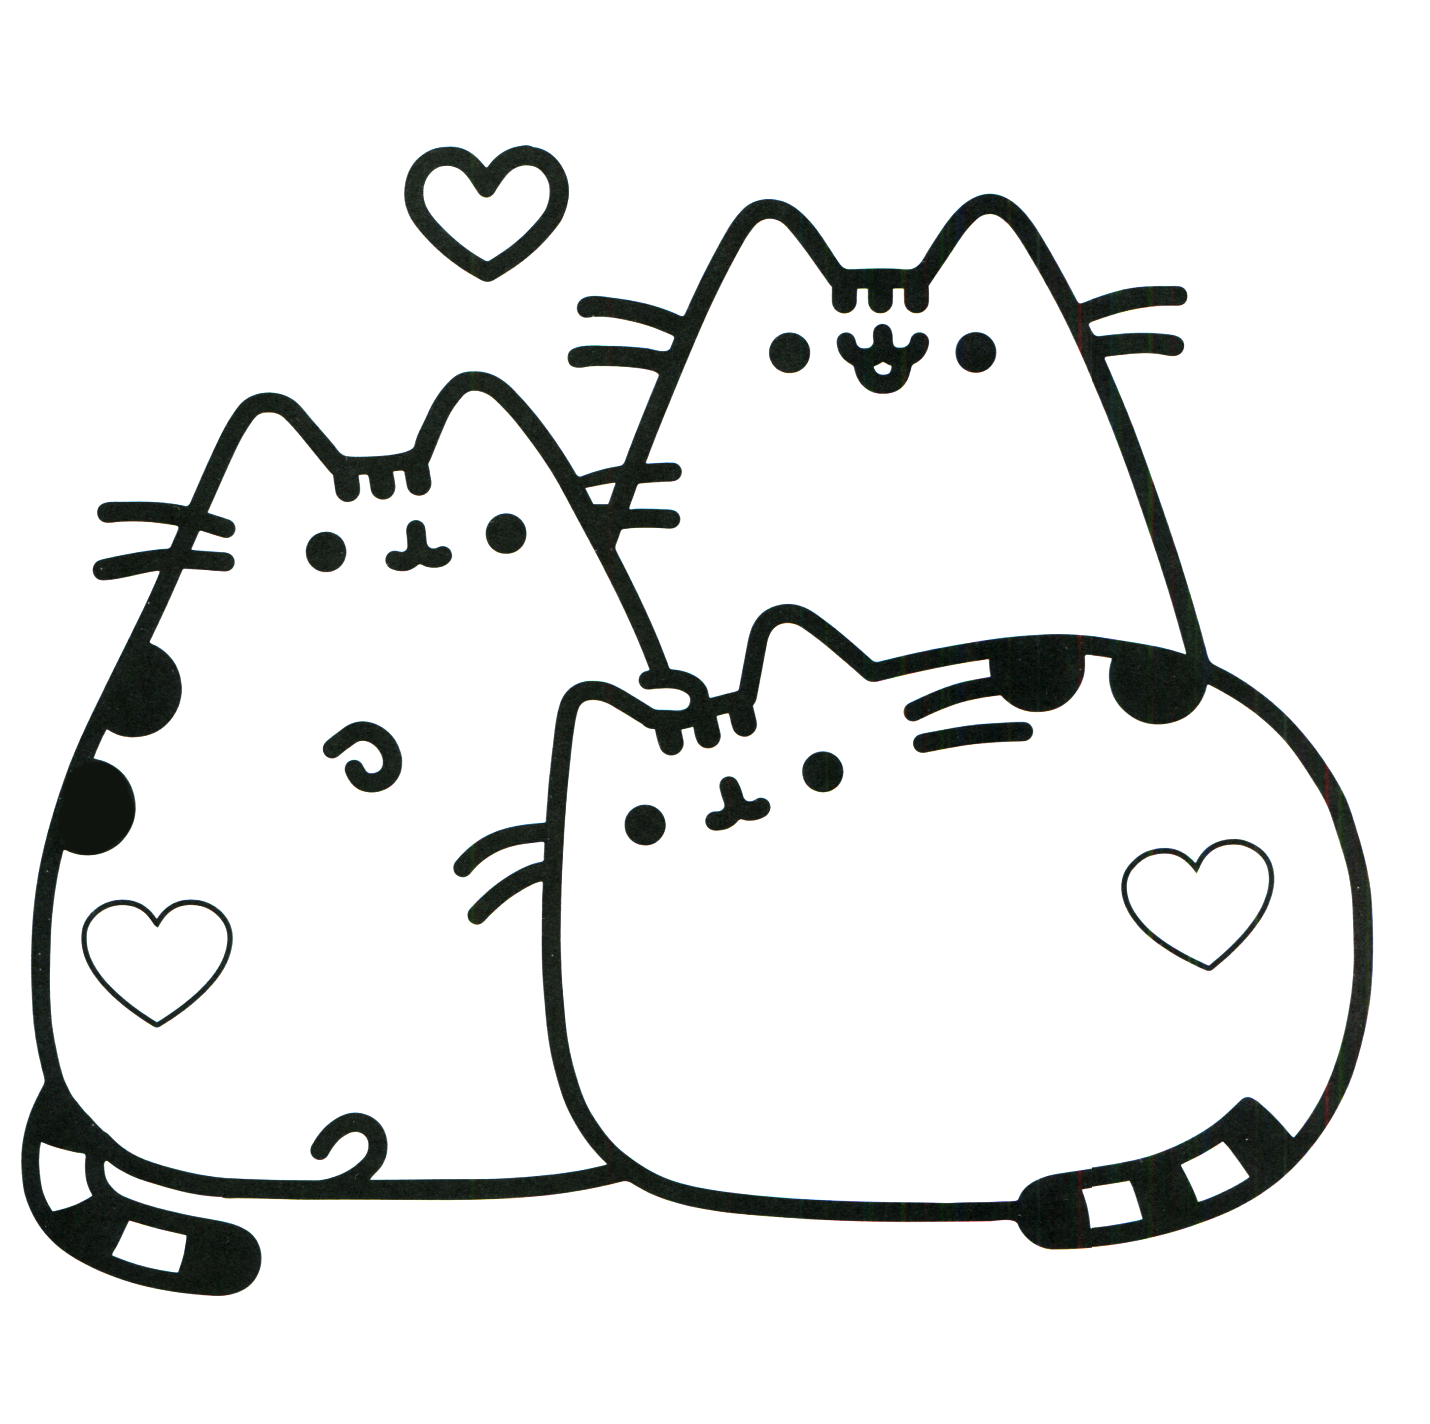 Tkonline 2pcs Diy Squishy Kawaii Bread Smell Charms Cellphone Straps Scented Slow Rising Hand Wrist Toy Cute Coloring Pages Pusheen Coloring Pages Cat Coloring Page